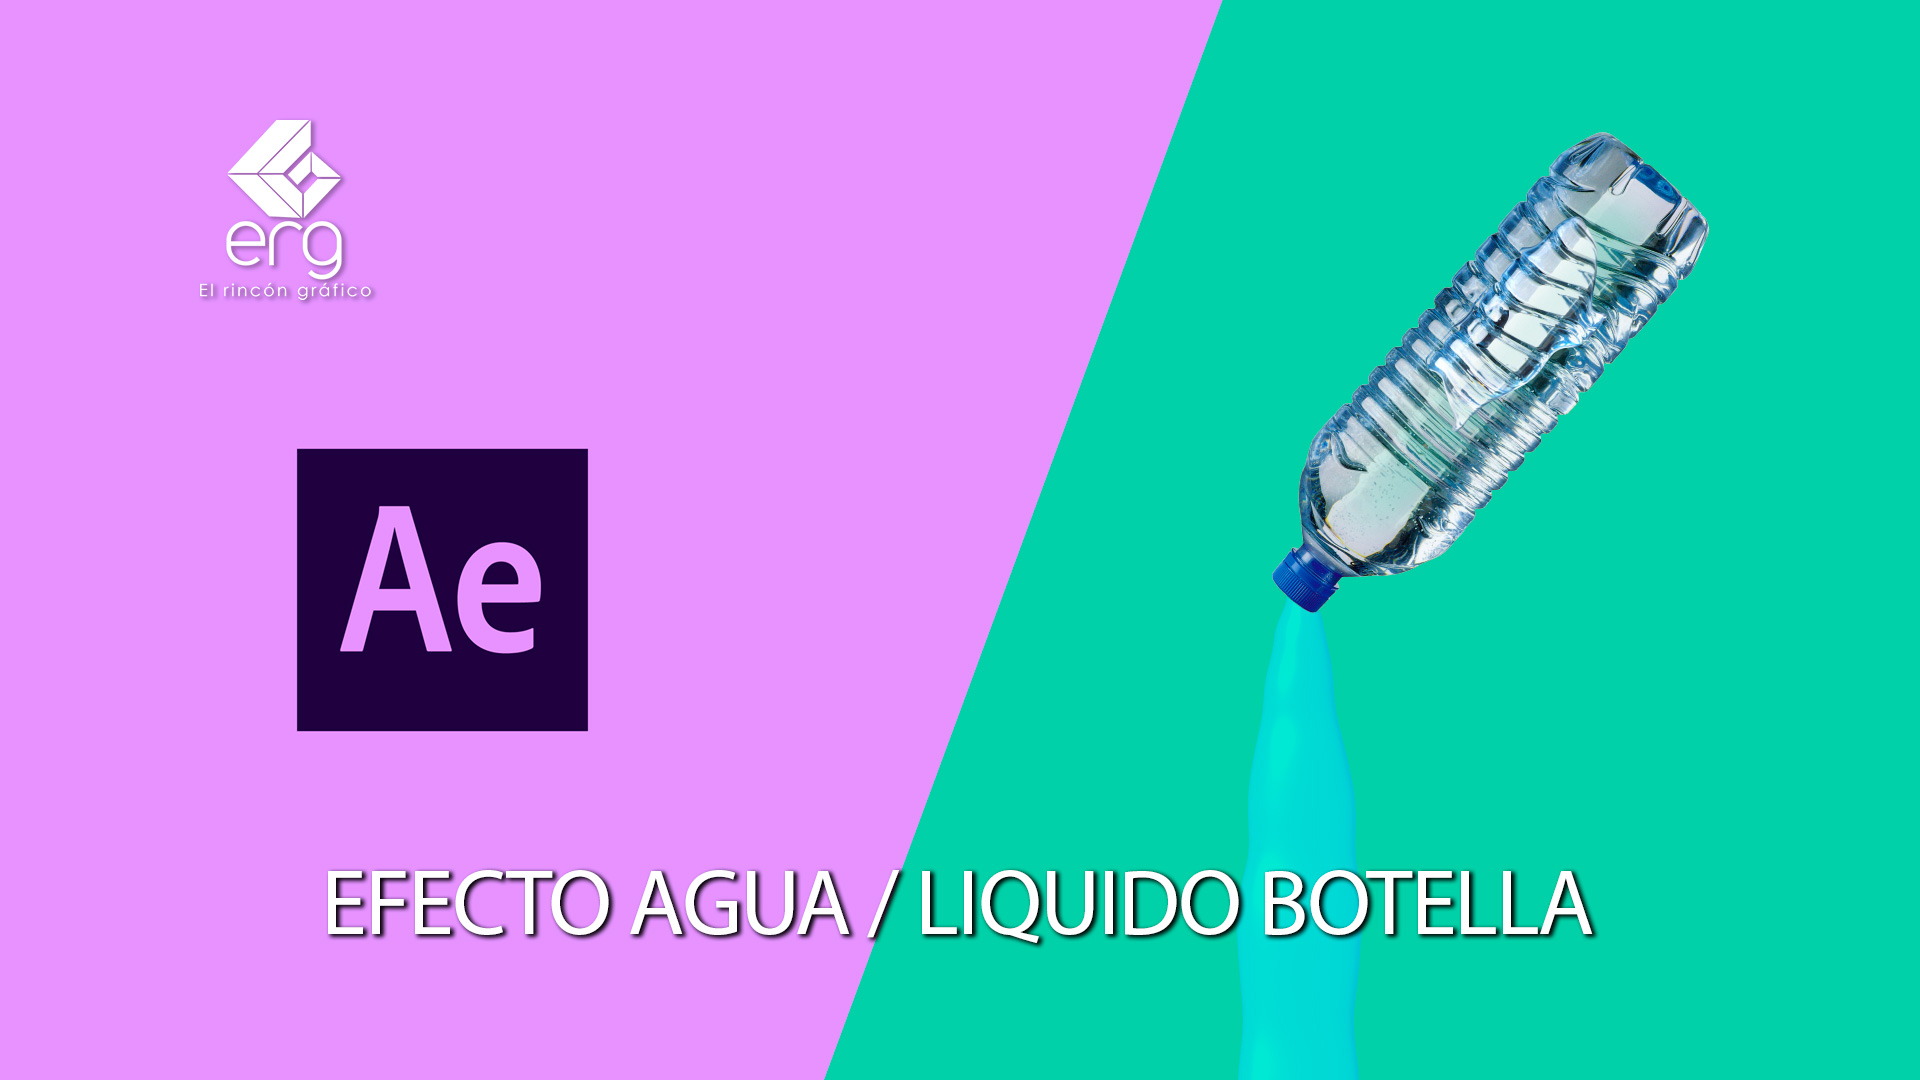 Tutorial After Effects 2020 Crear Efecto Agua/Liquido Botella [RAPIDO] 😅